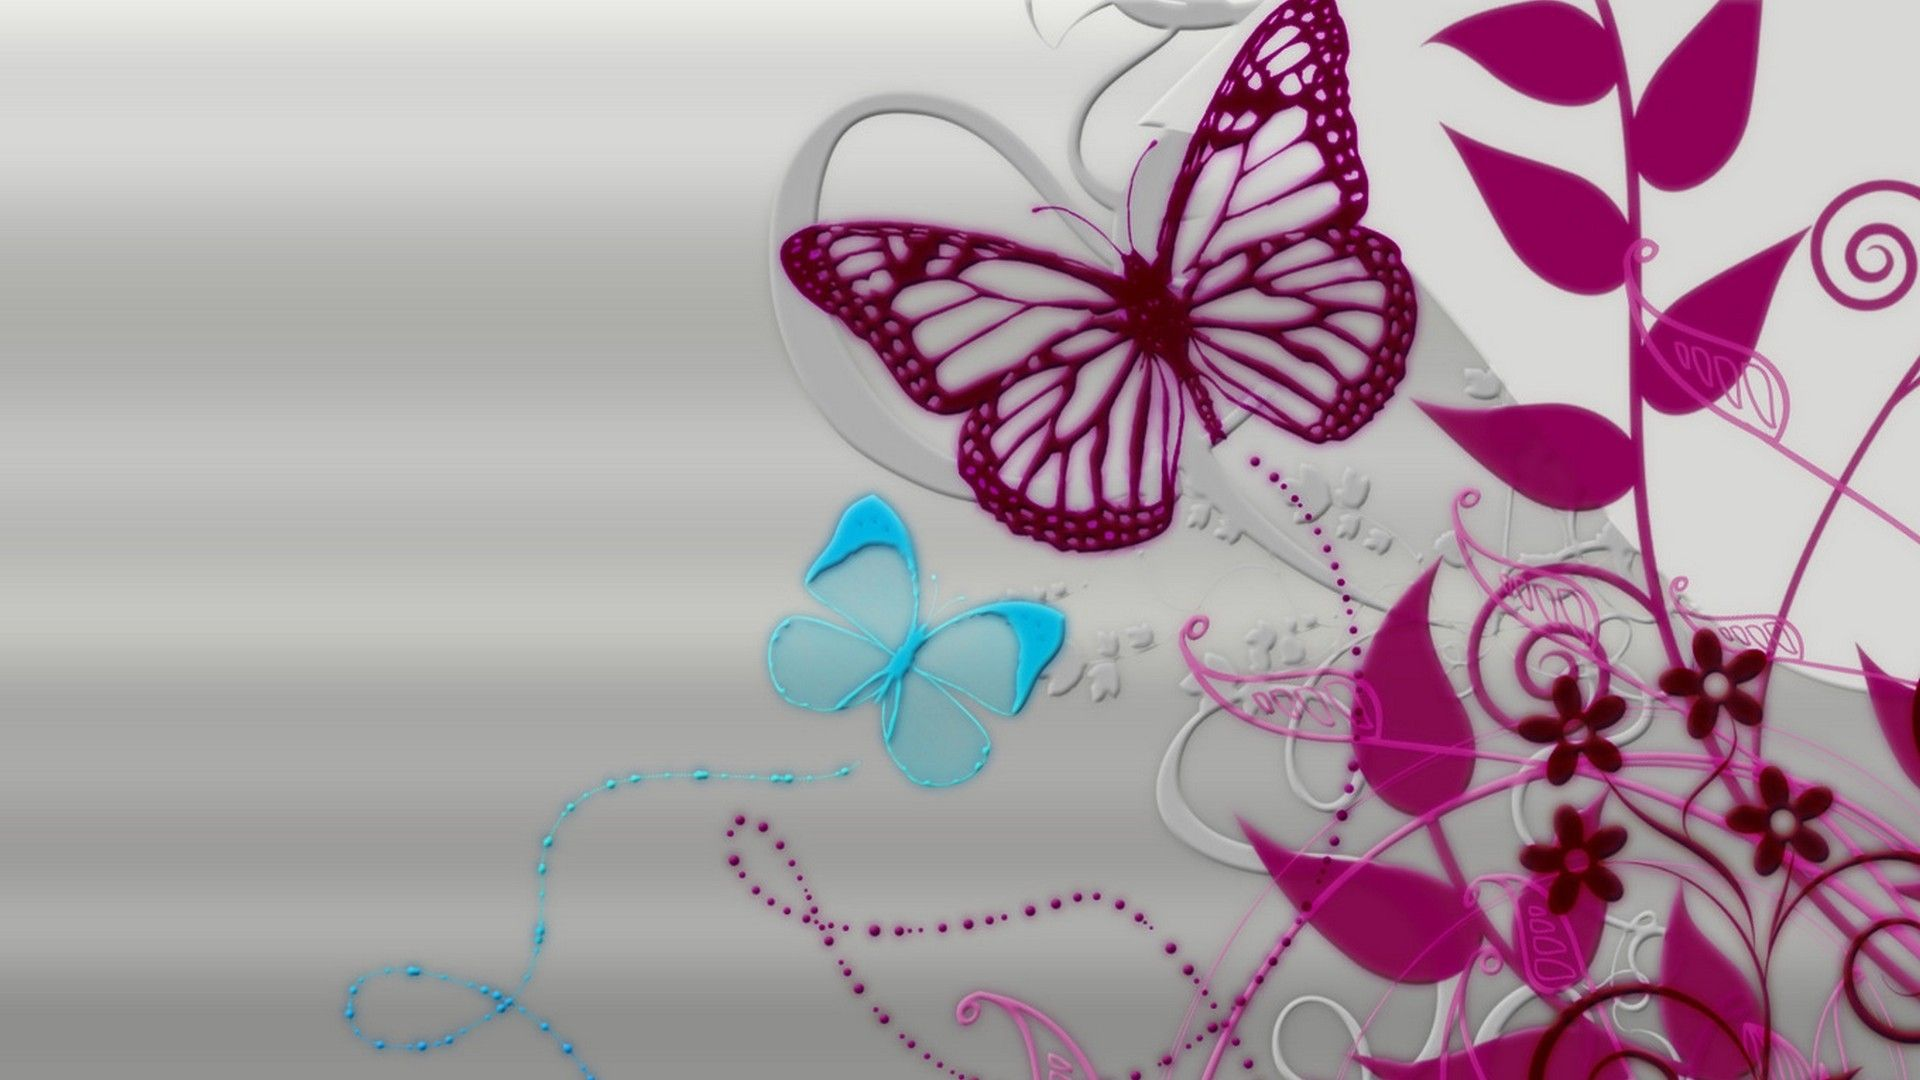 Computer Wallpapers Pink Butterfly Best Hd Wallpapers Butterfly Wallpaper Purple Butterfly Wallpaper Blue Butterfly Wallpaper